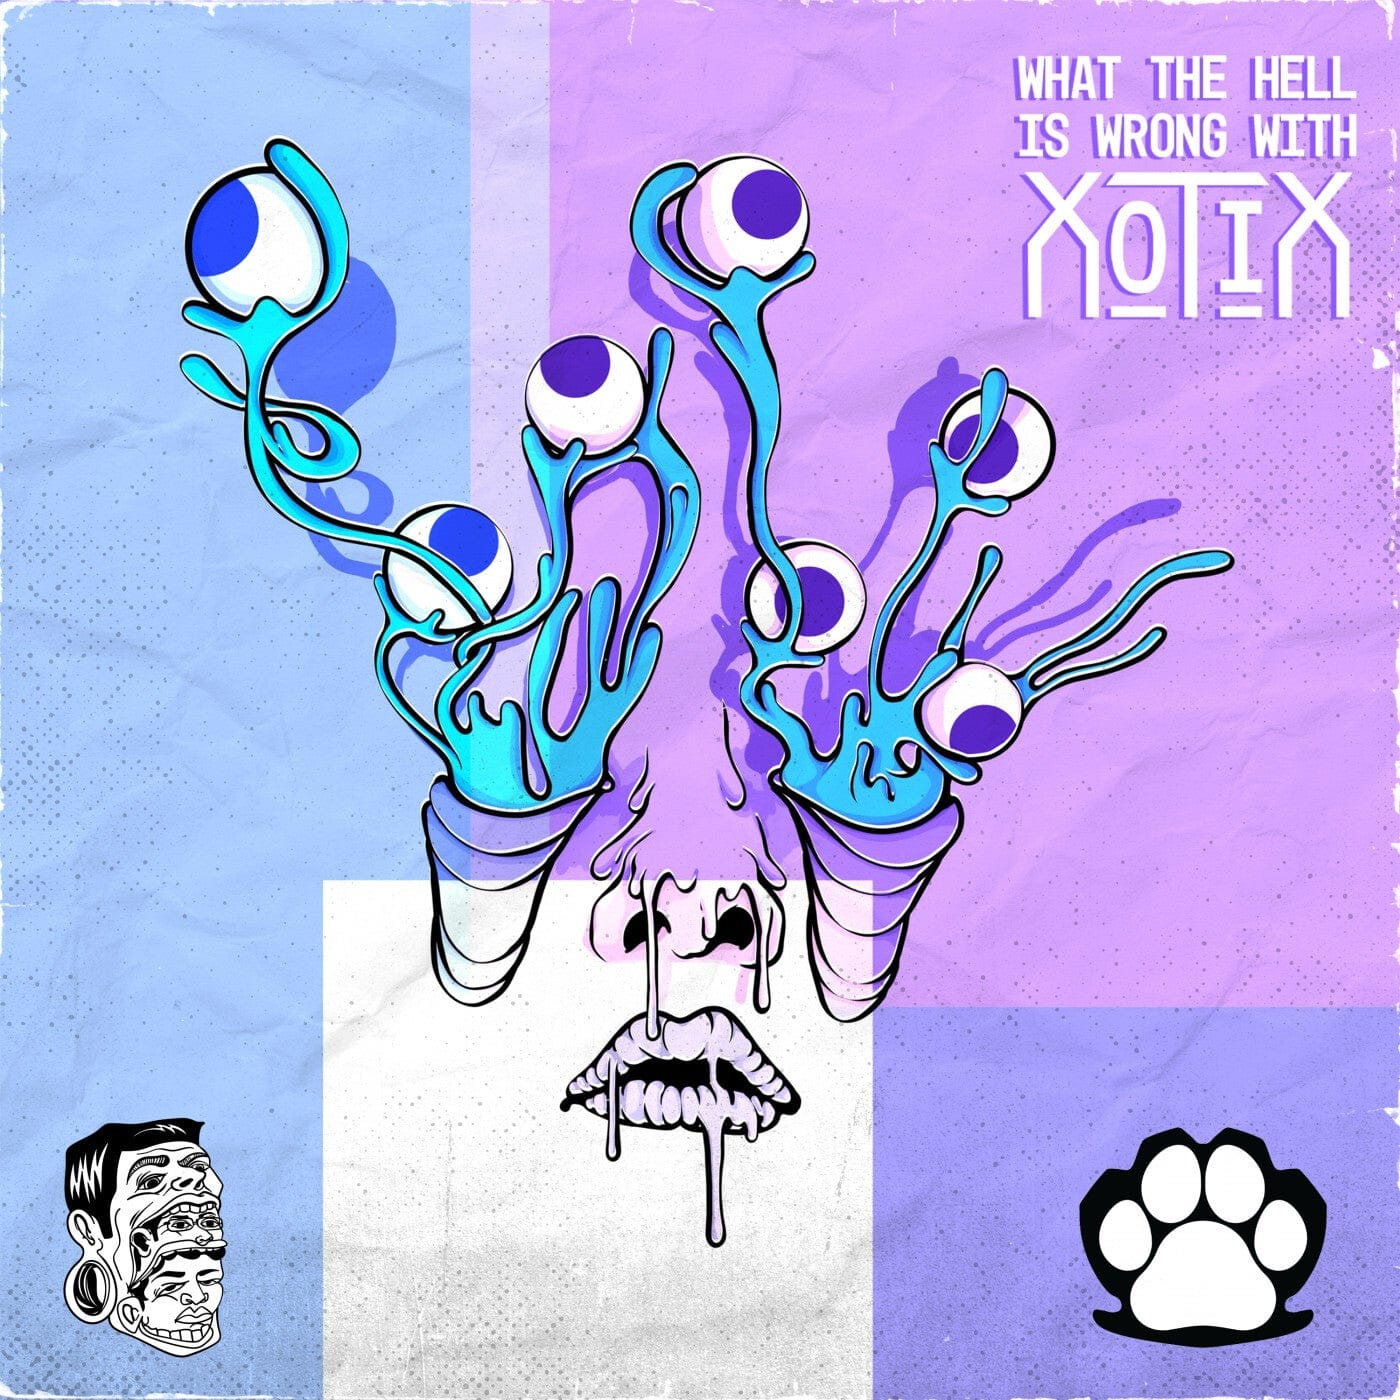 Xotix - What The Hell Is Wrong With Xotix (2021)